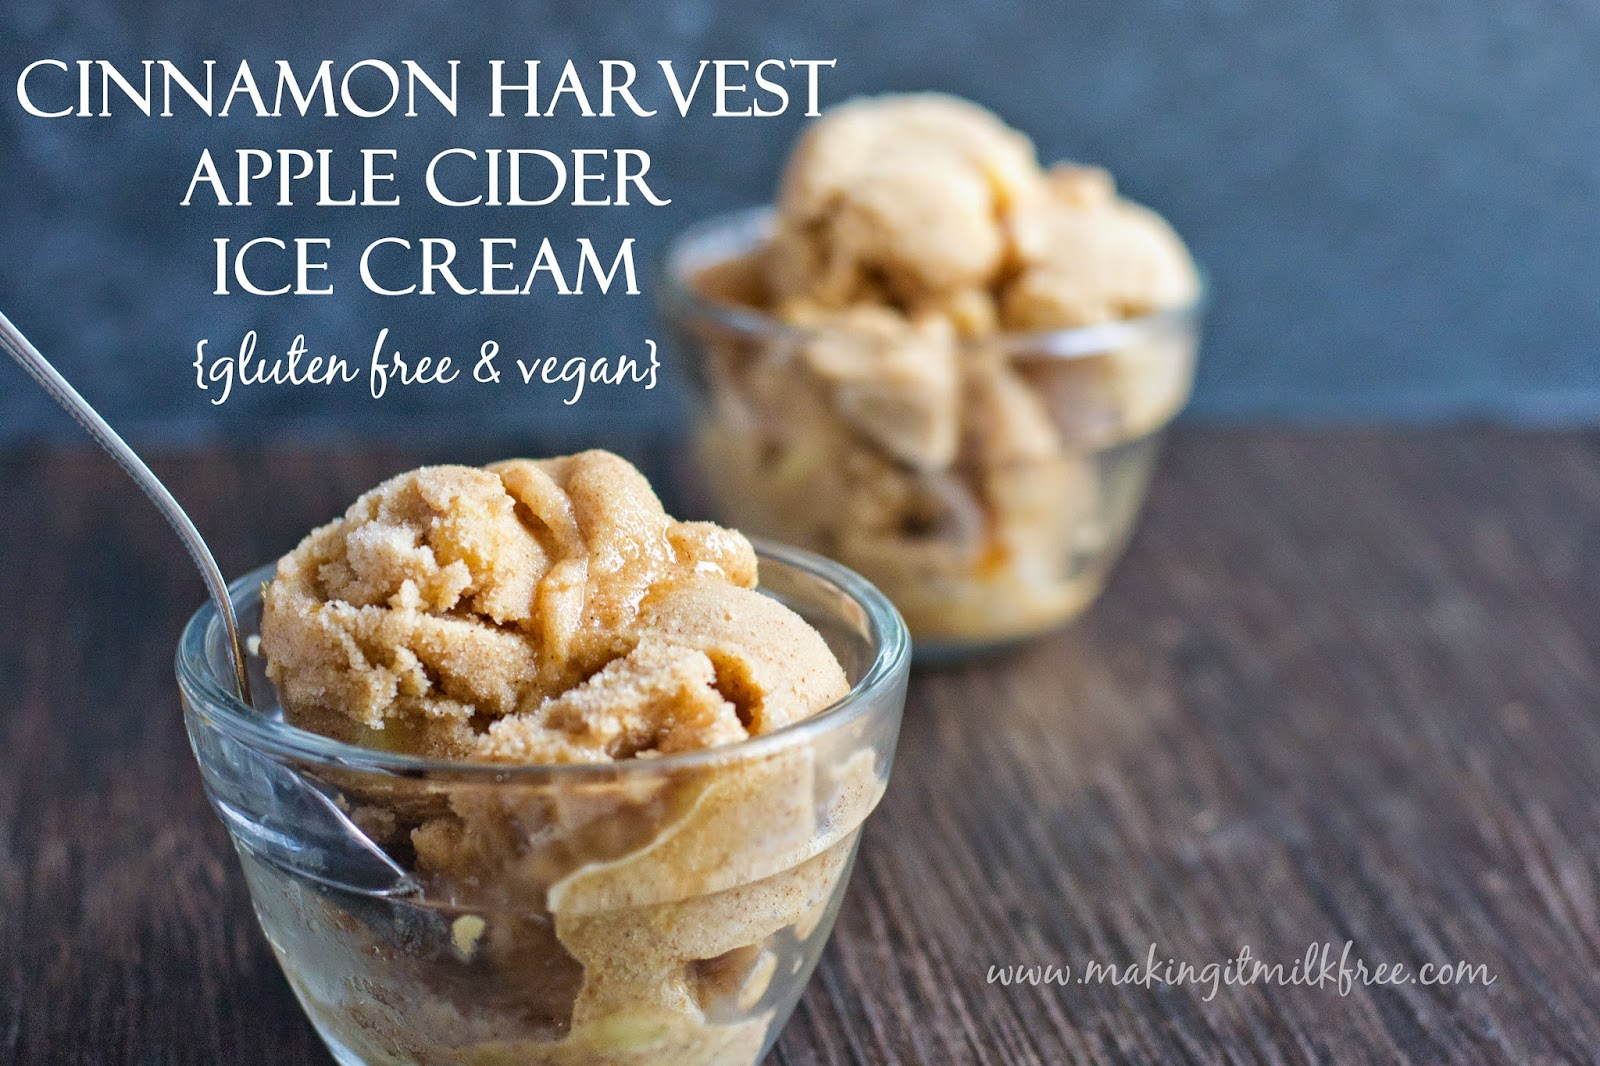 #vegan #glutenfree #fallrecipes #icecream #applecider